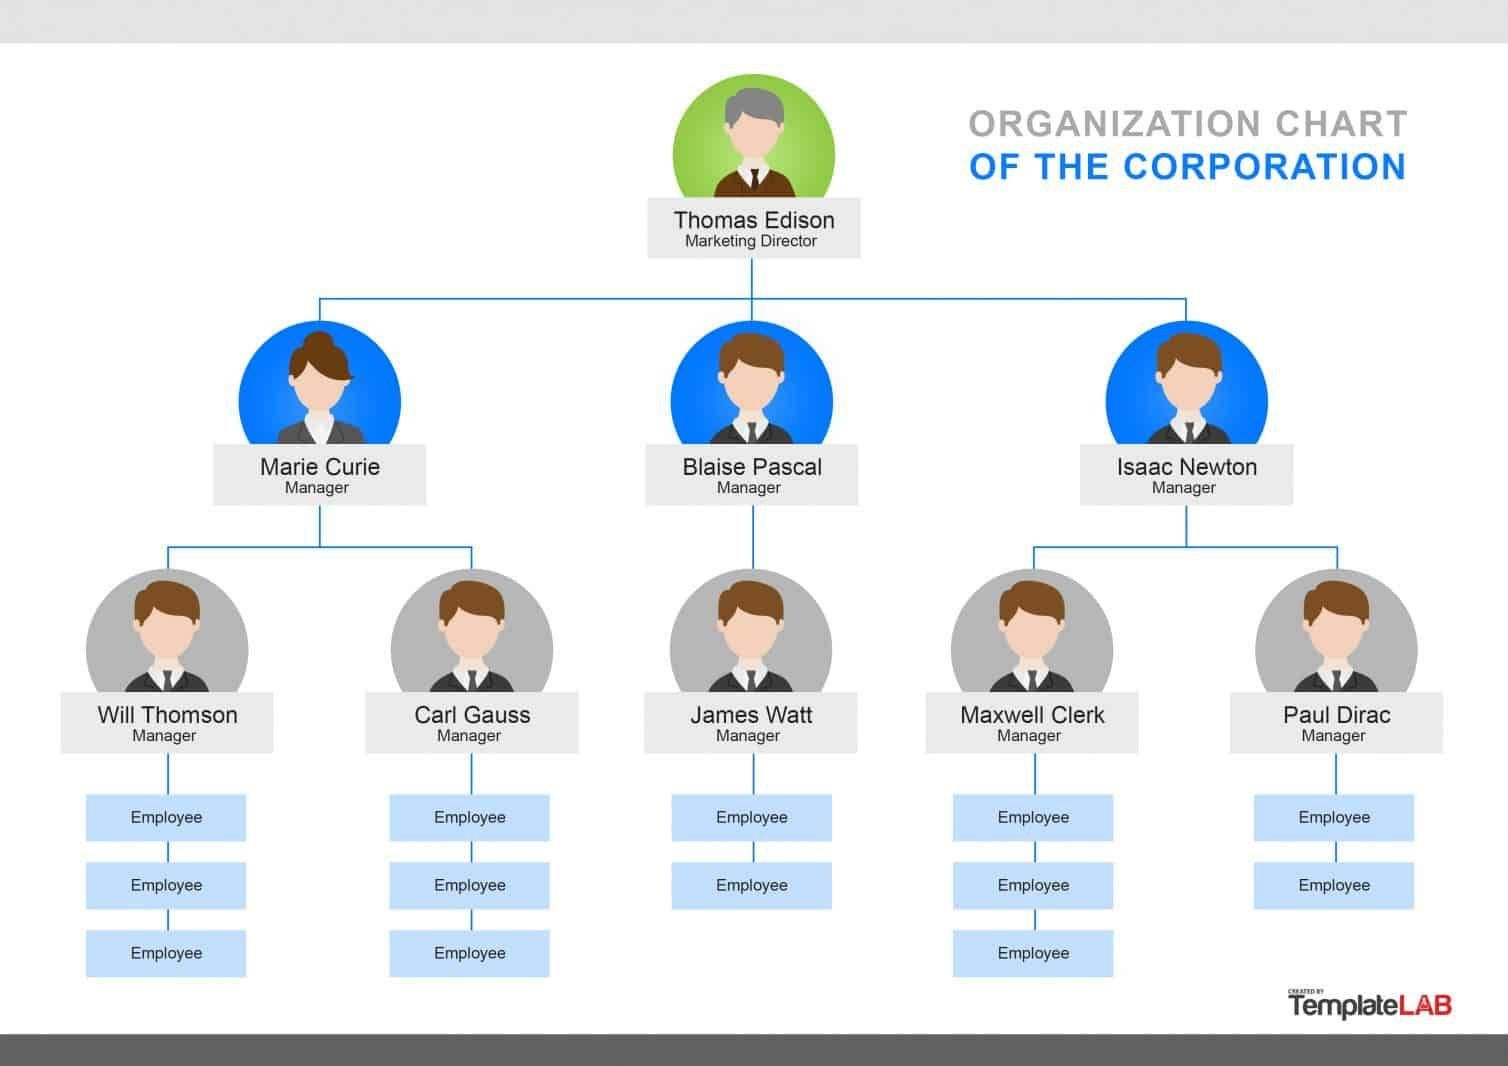 000 Marvelou M Word Org Chart Template Image  Organizational Free DownloadFull